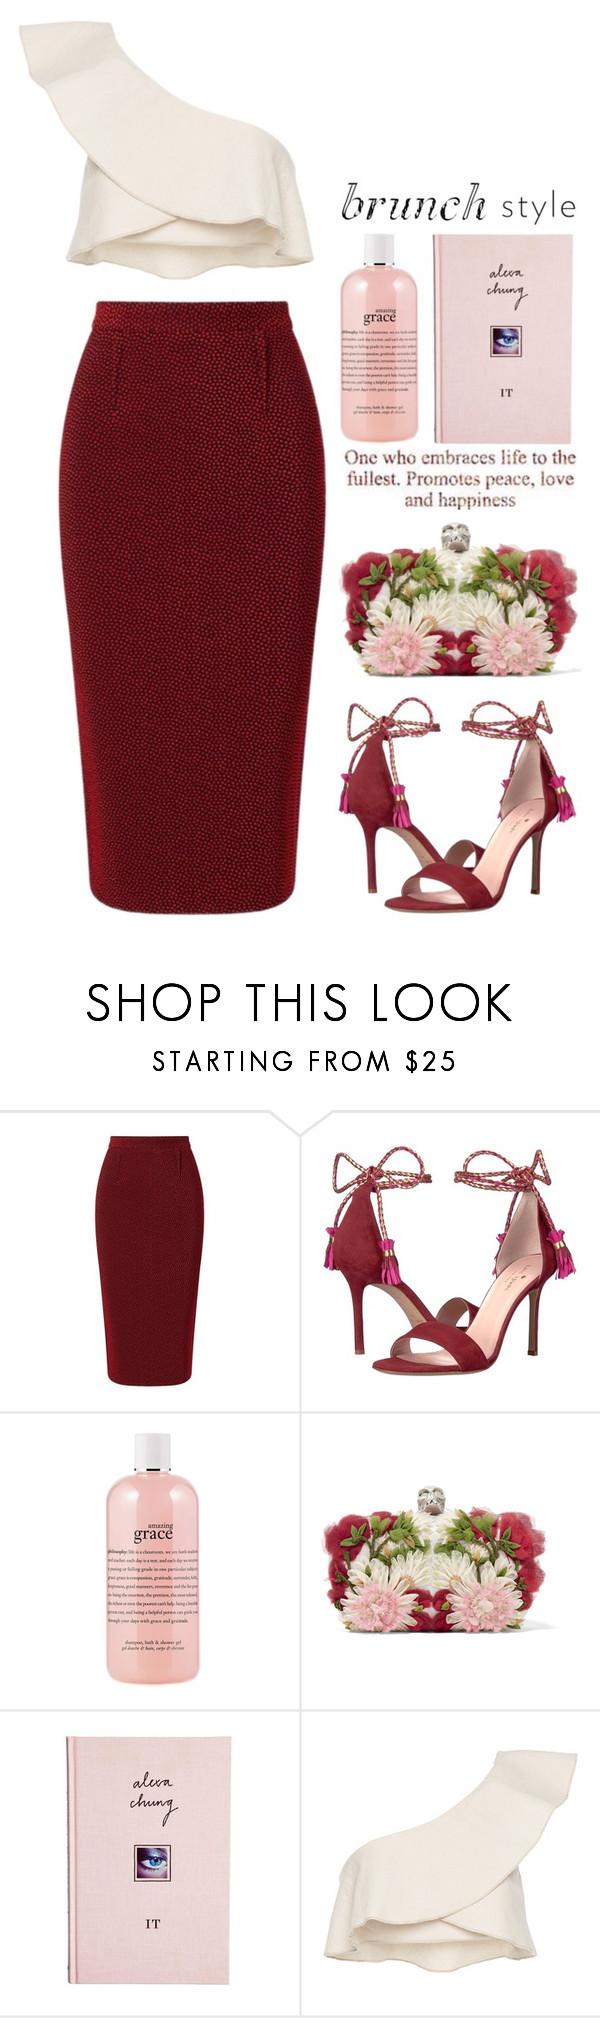 """""""Brunch Style"""" by mcheffer ❤ liked on Polyvore featuring Roland Mouret, Kate Spade, philosophy, Alexander McQueen, ASOS, Isabel Marant and brunchgoals"""